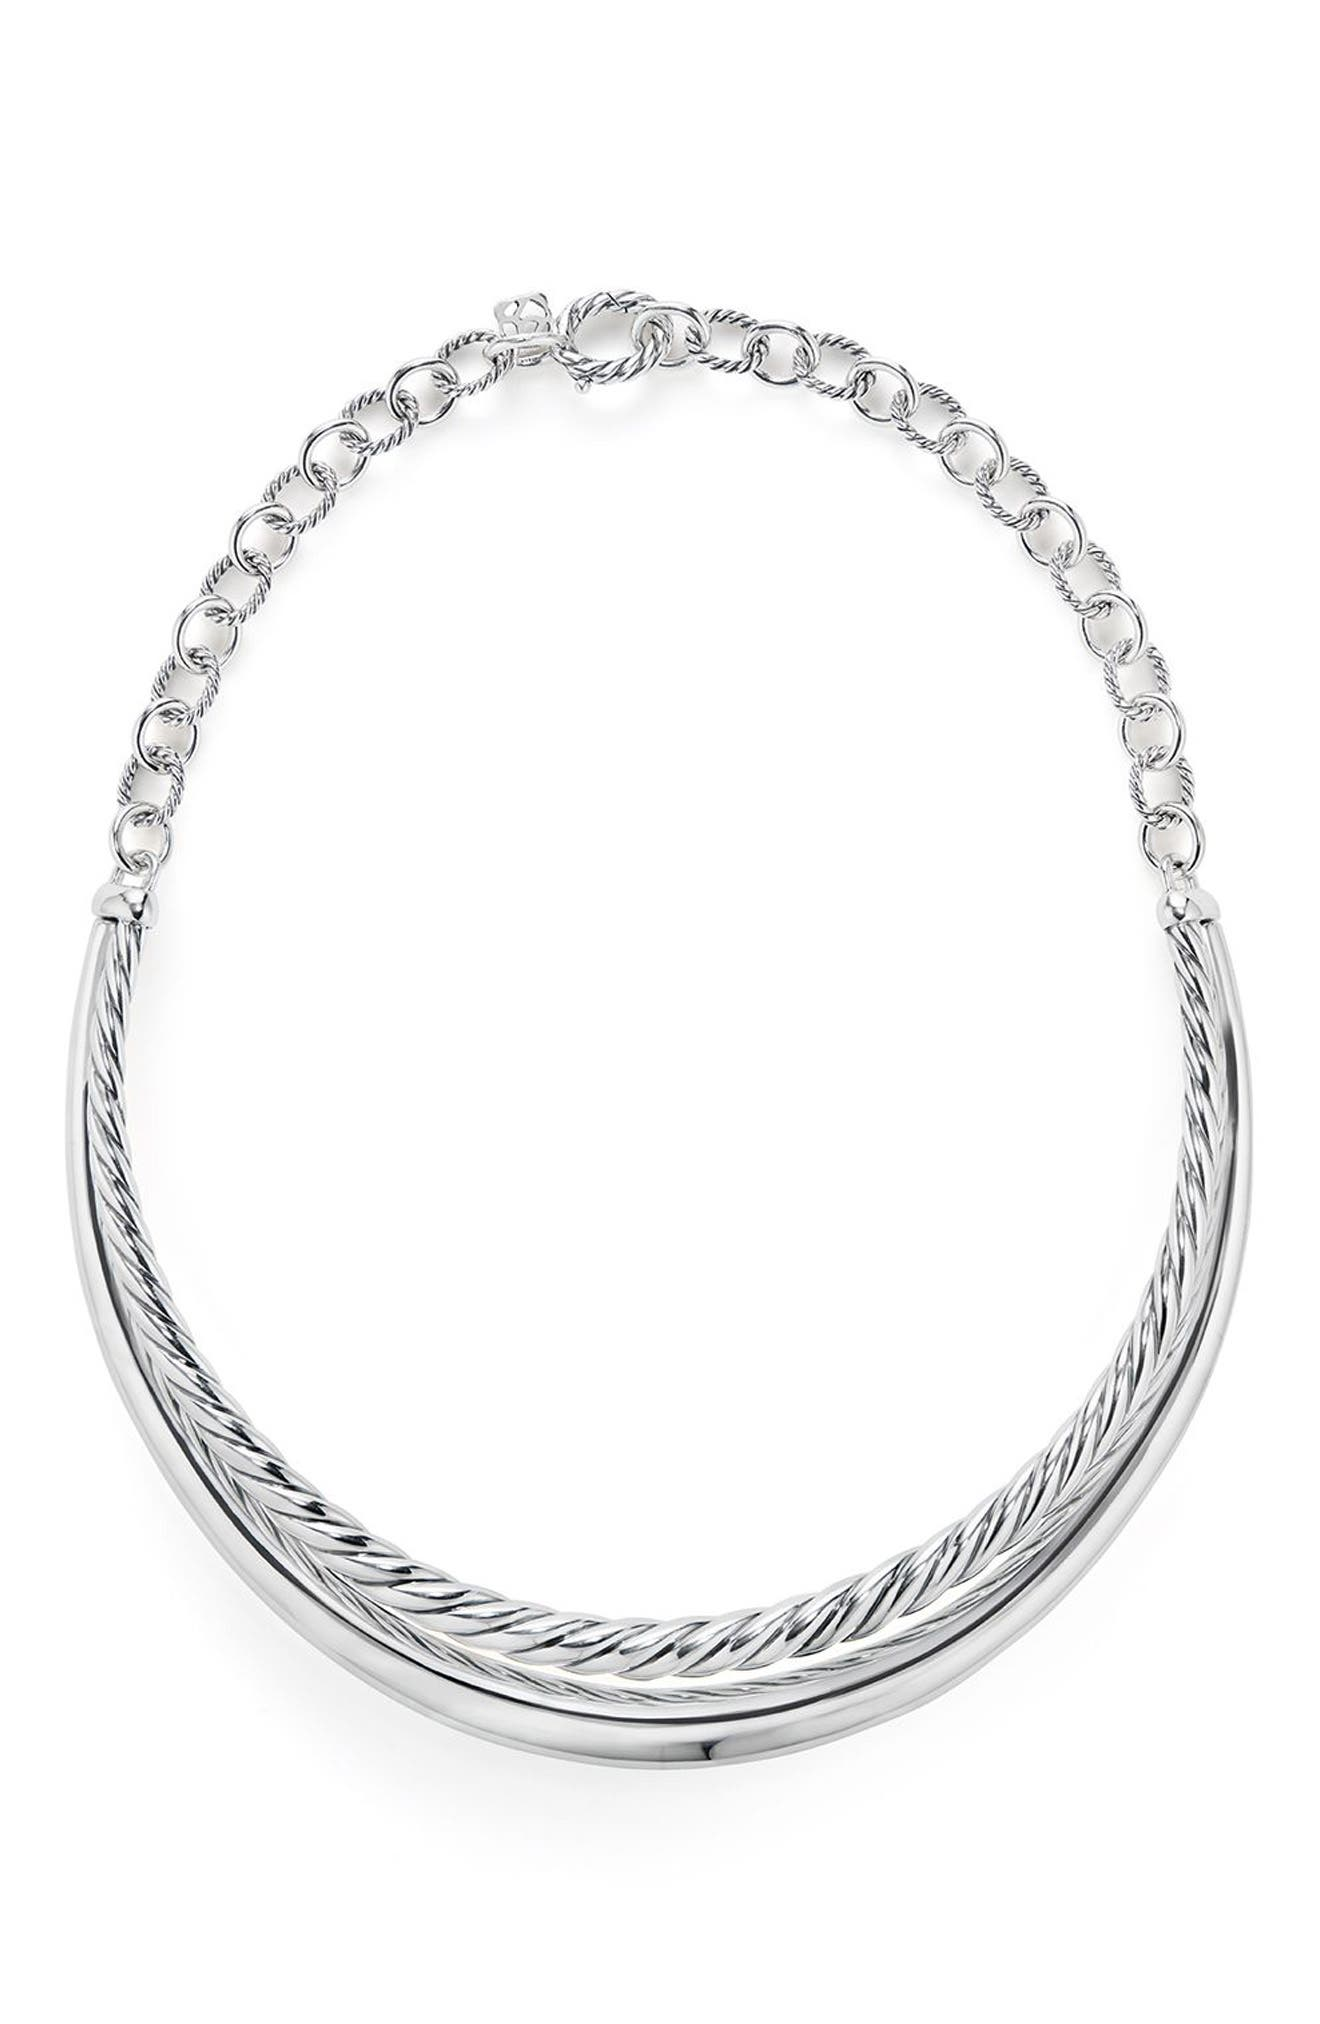 Pure Form Collar Necklace,                             Main thumbnail 1, color,                             Silver